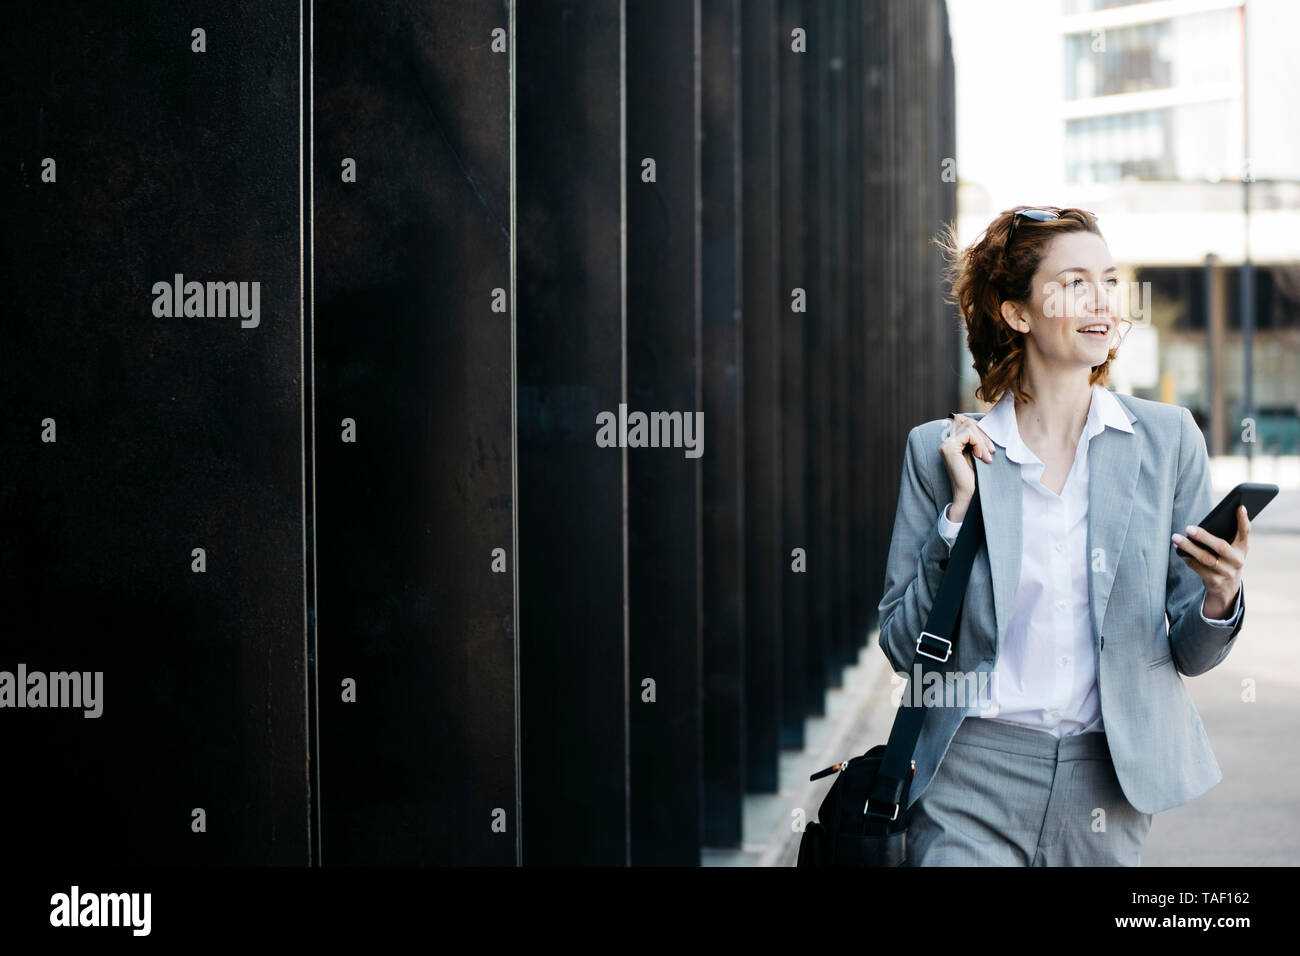 Businesswoman with smartphone, commuting in the city - Stock Image